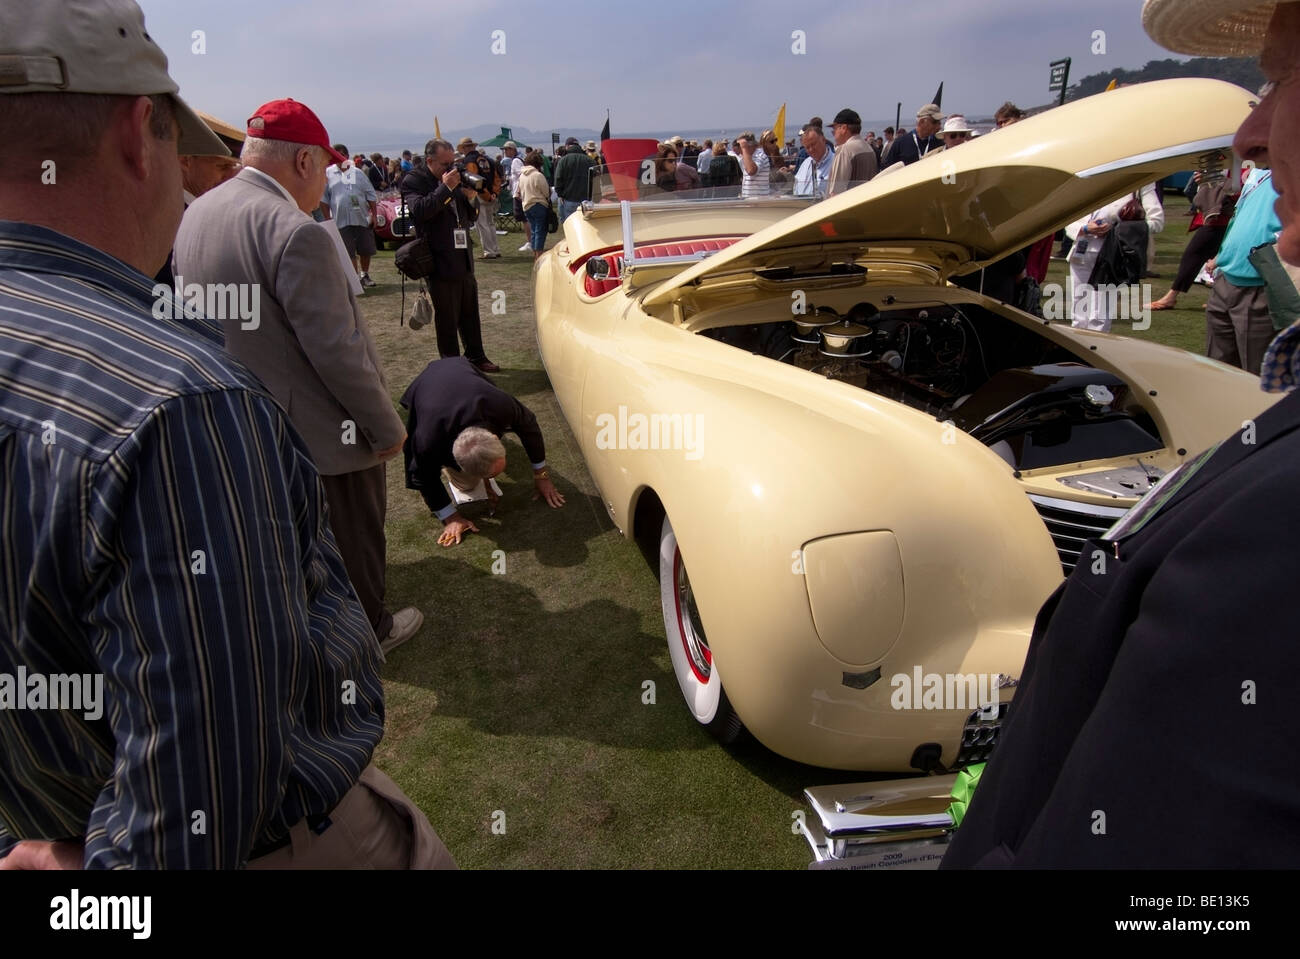 Concours judge inspecting a 1941 Chrysler LeBaron Newport at the 2009 Pebble Beach Concours d'Elegance - Stock Image